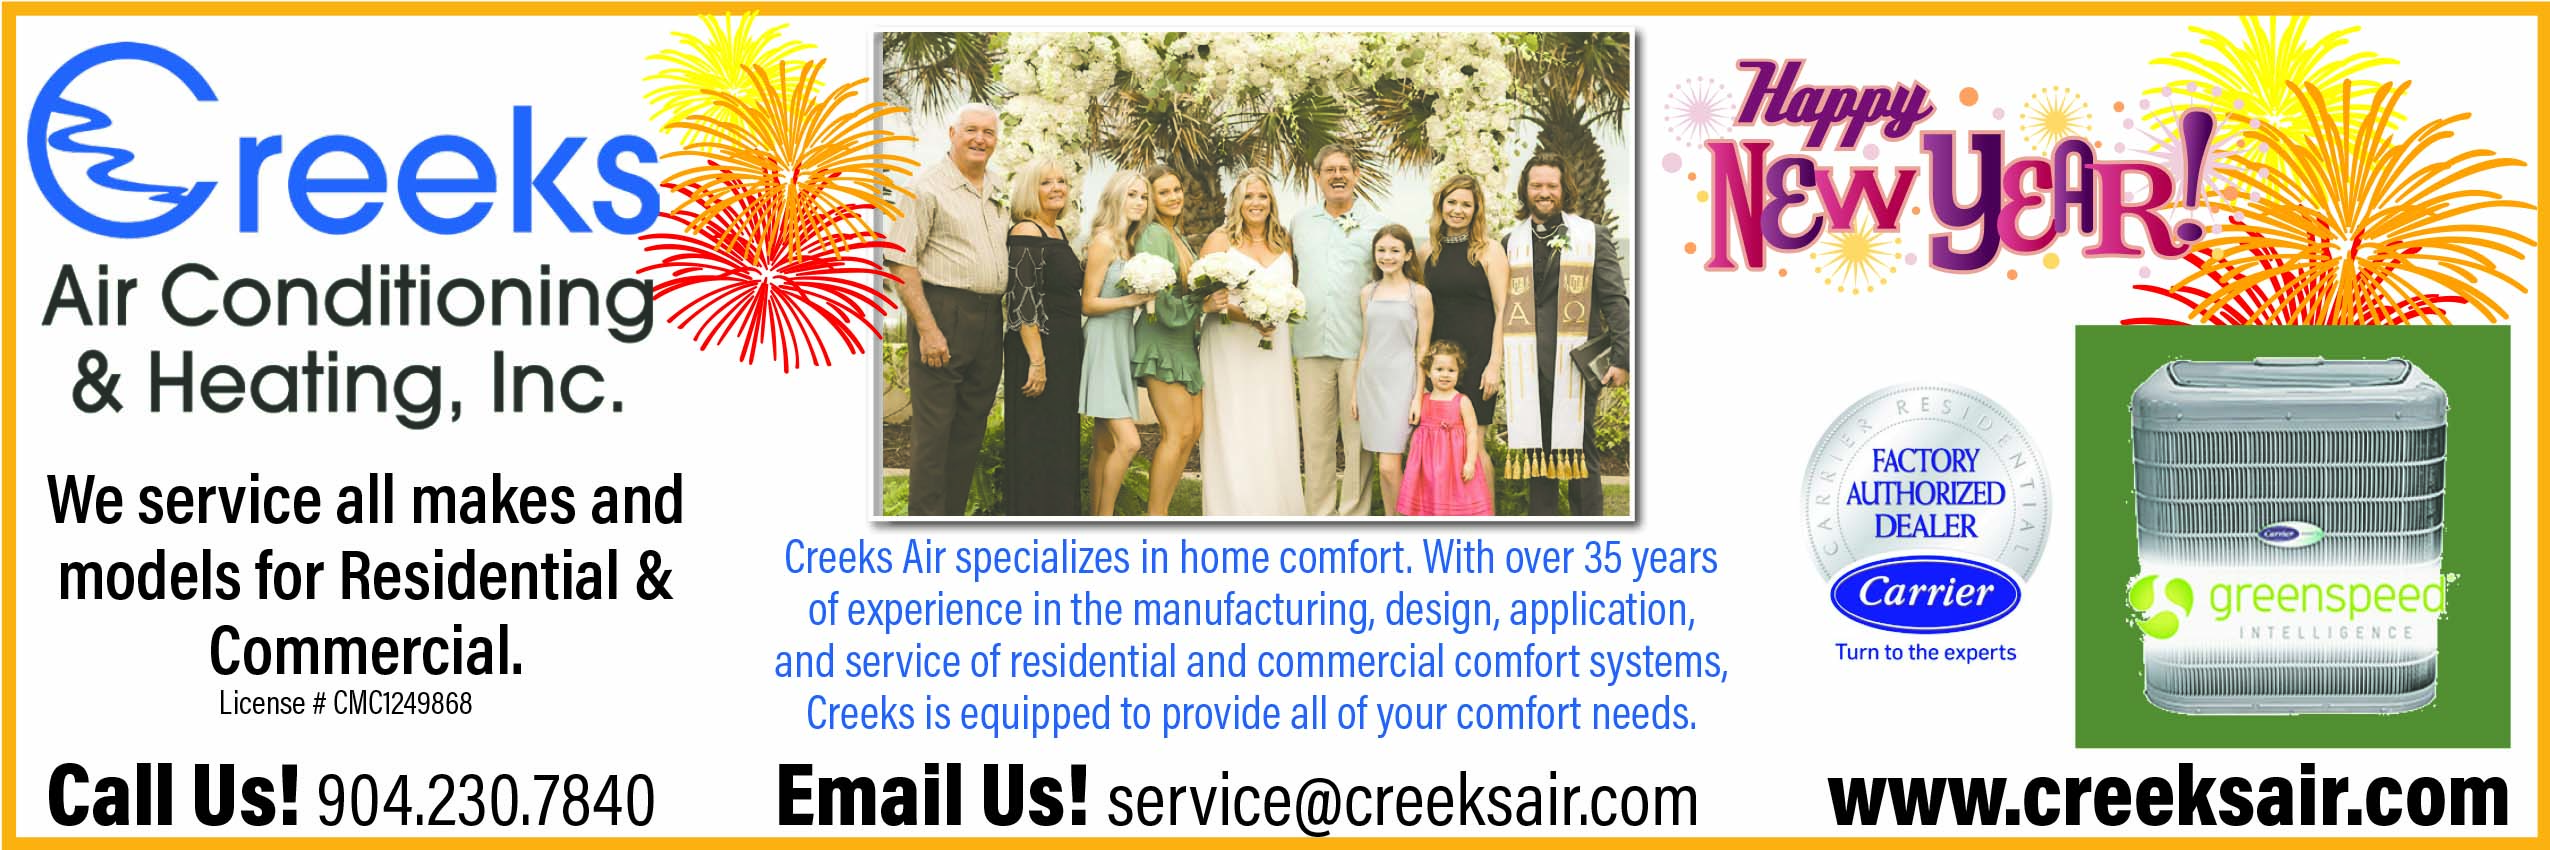 Creeks Air Conditioning & Heating. We service all makes and models for residential and commercial! Creeks air specializes in home comfort with over 35 years of experience in the manufacturing, design, application, and service of residential and commercial comfort systems, creeks is equipped to provide all of your comfort needs. Call US 904 230 7840 Email us! service@creeksair.com www.creeksair.com